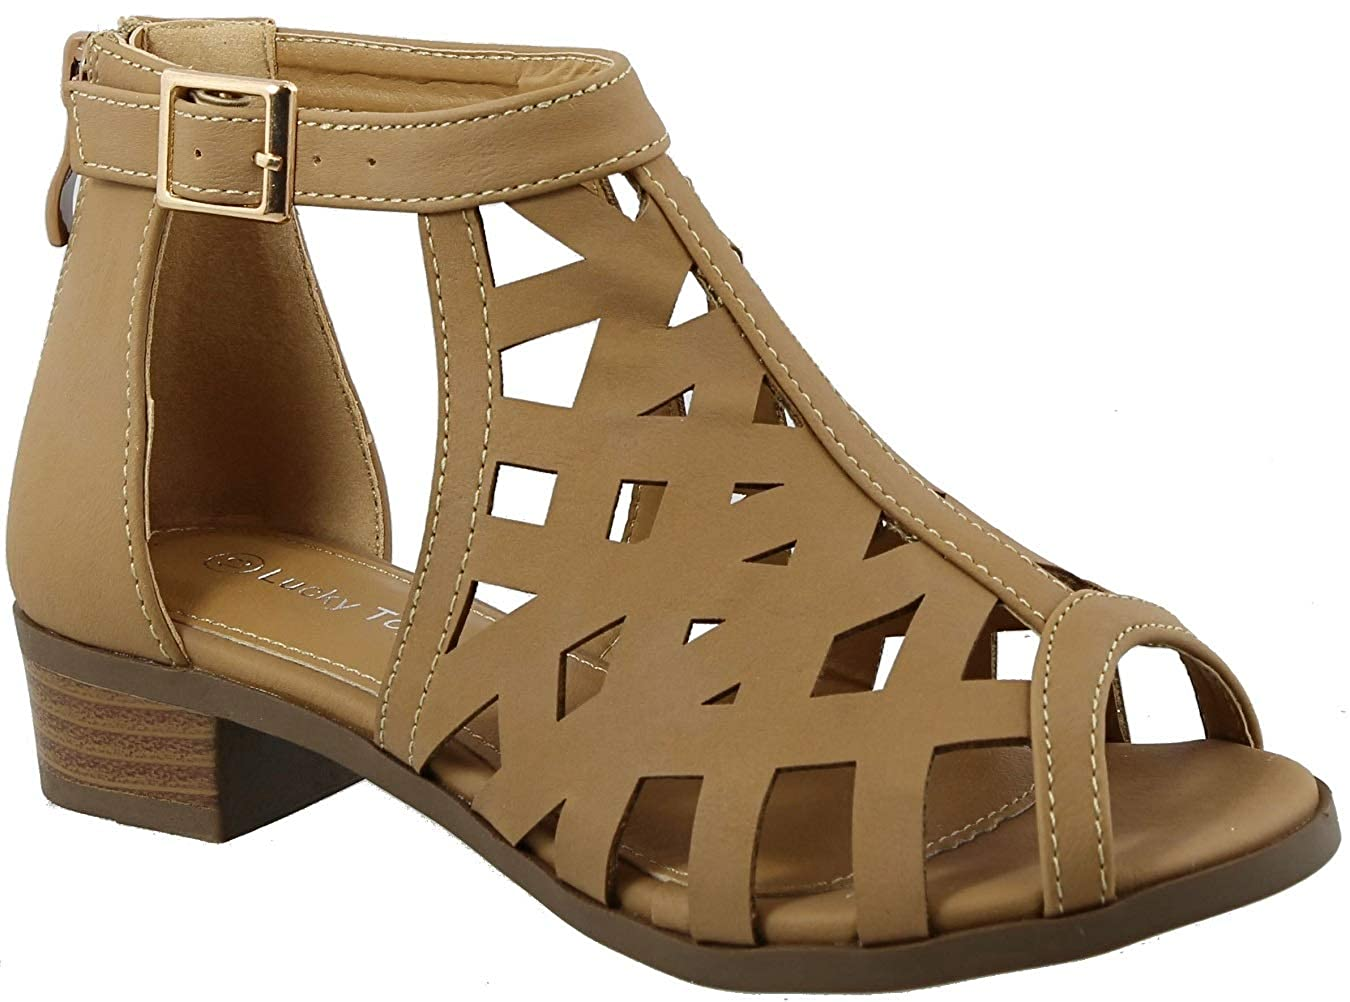 Amazon.com: TOP Moda Jerry-82 Sandalias de gladiador con ...